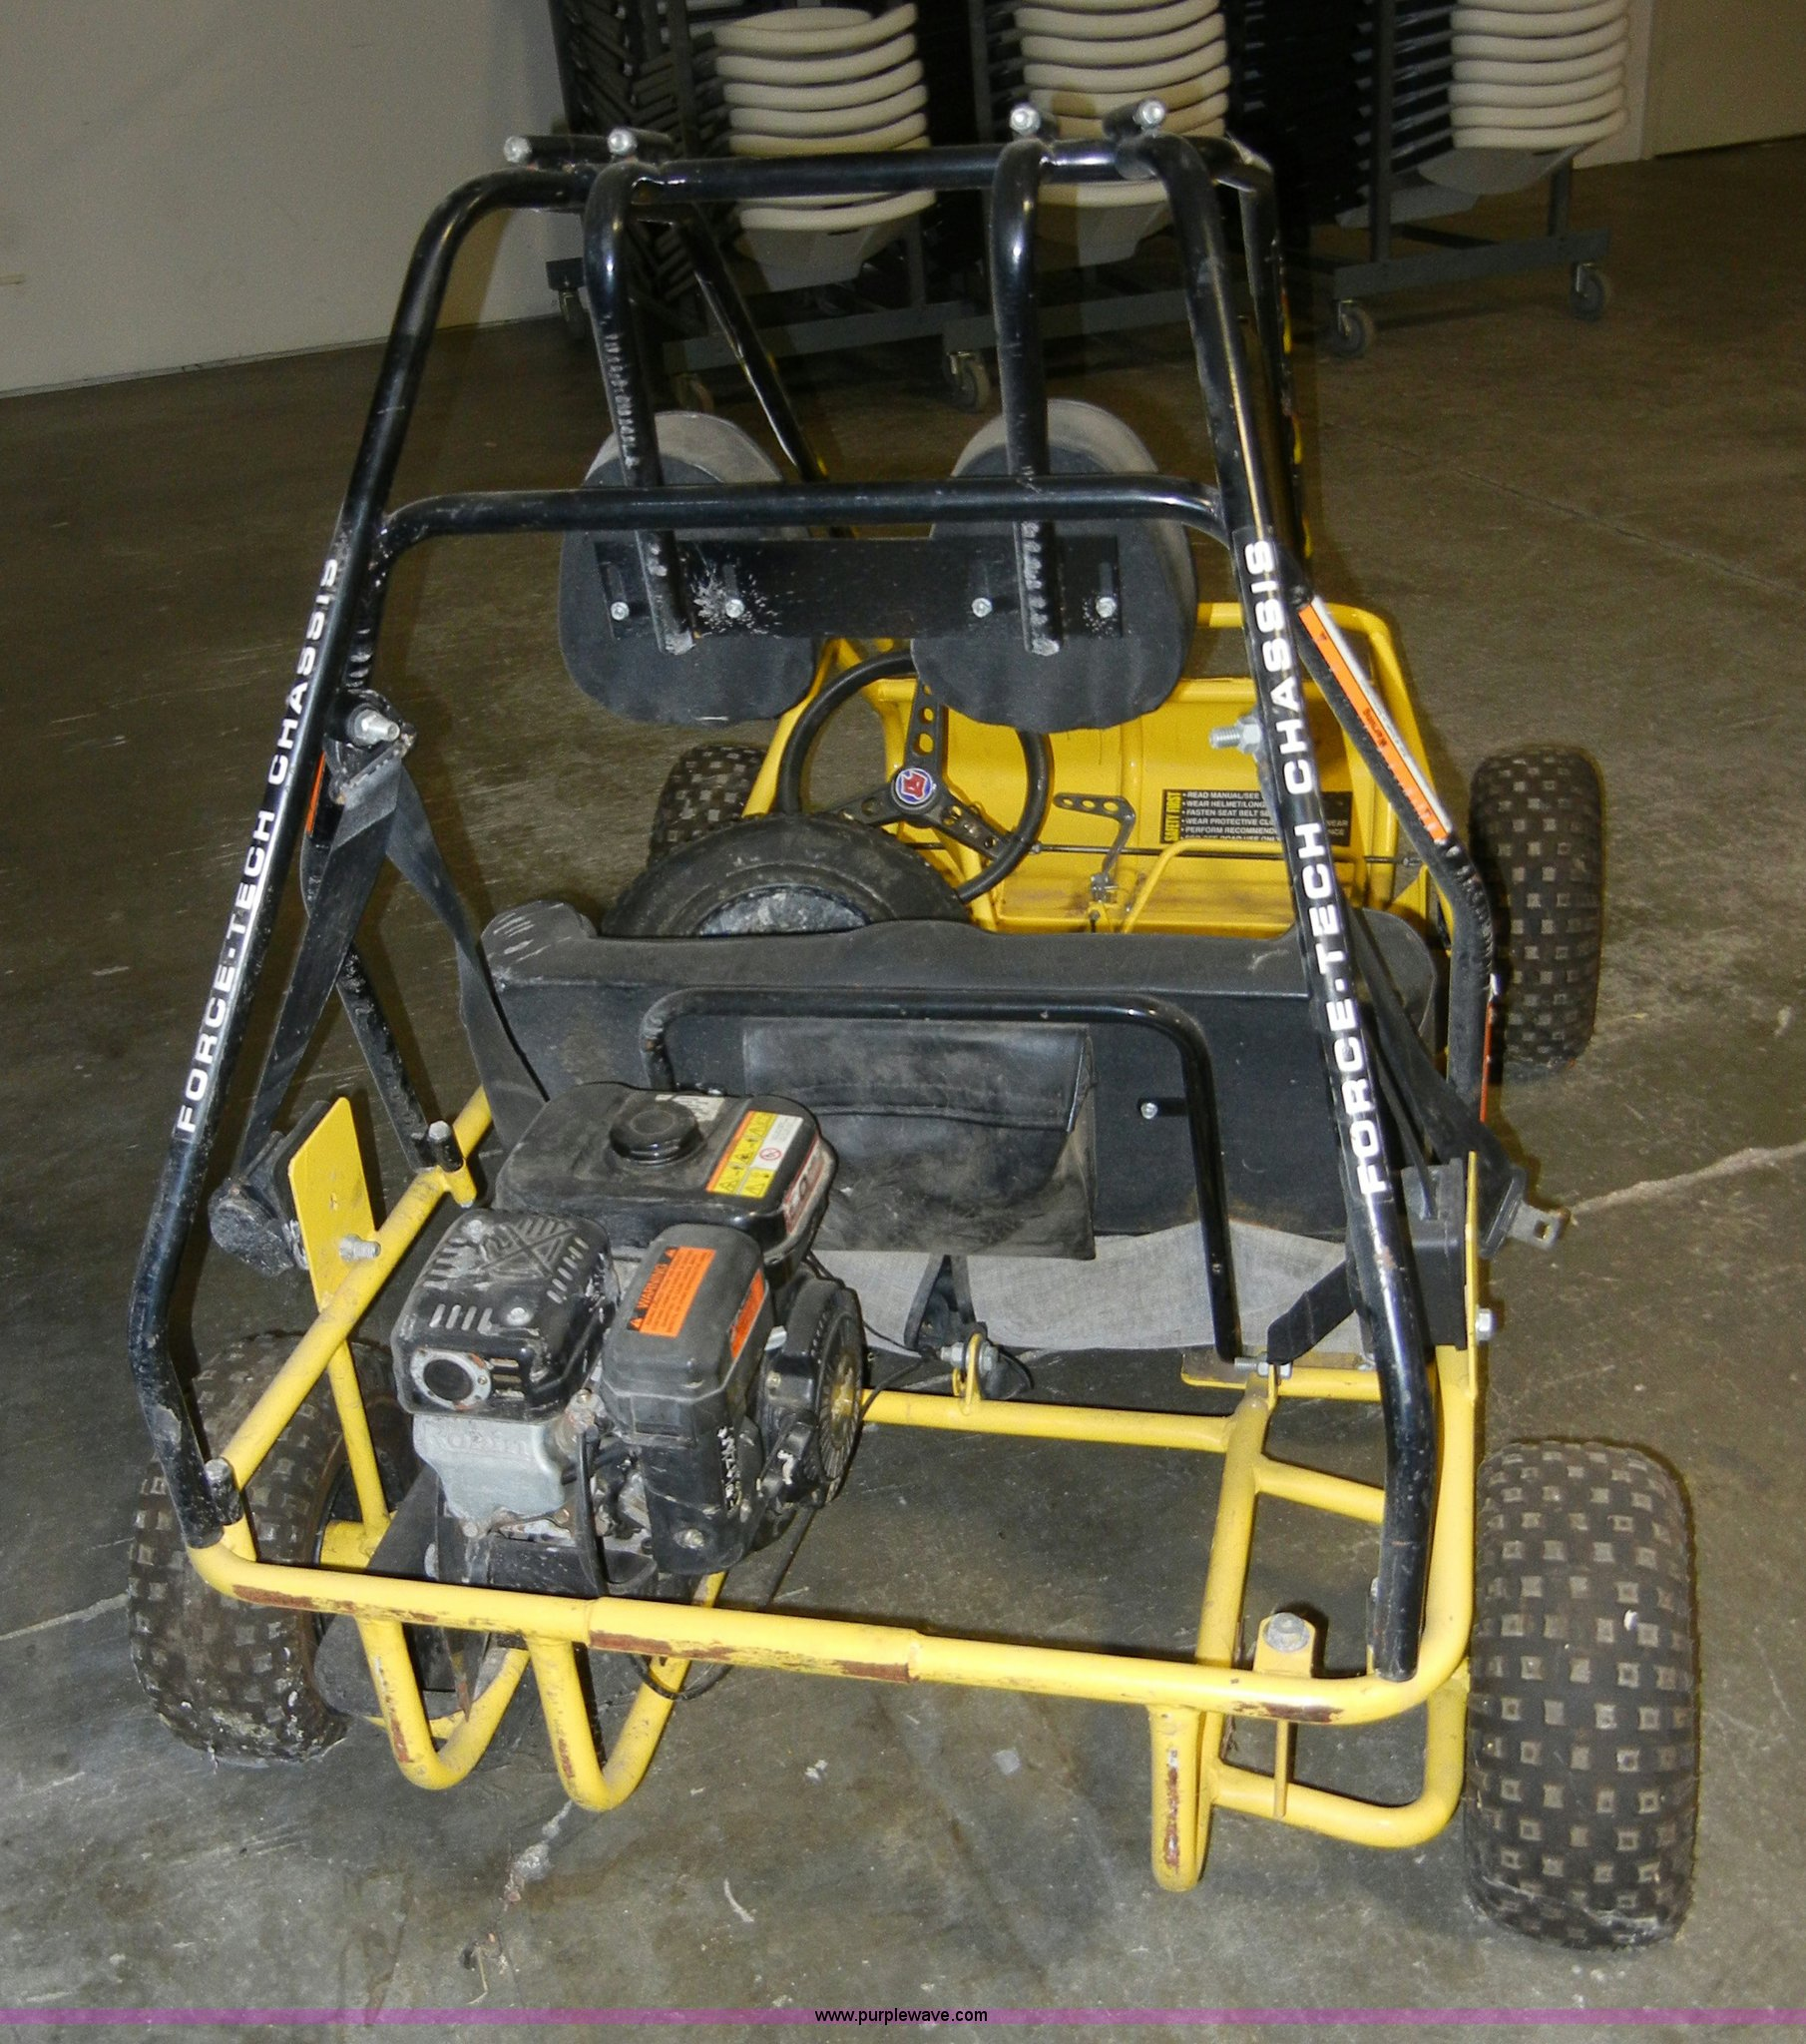 Fox American Cruiser two person go-kart   Item 2285   SOLD!